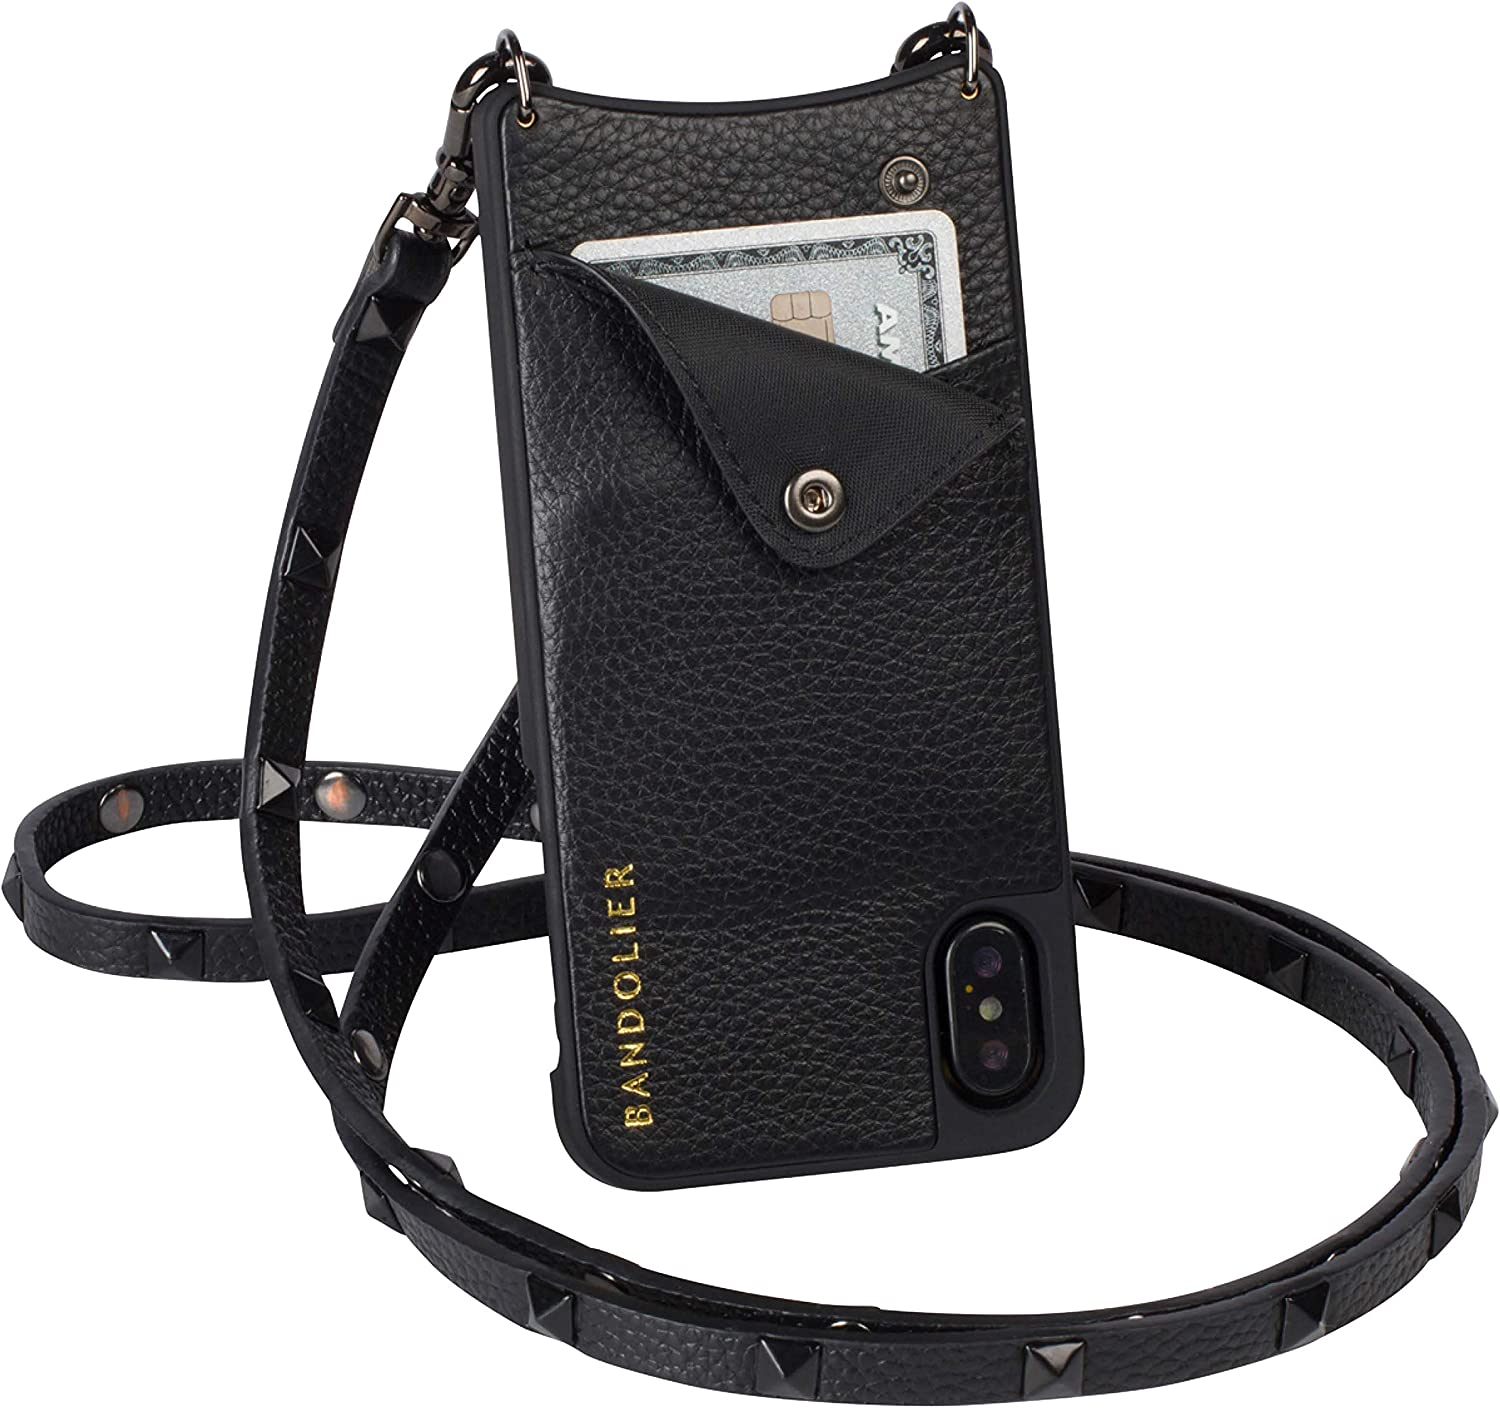 Bandolier Sarah Crossbody Phone Case and Wallet - Black Leather with Pewter Detail - Compatible with iPhone XR Only